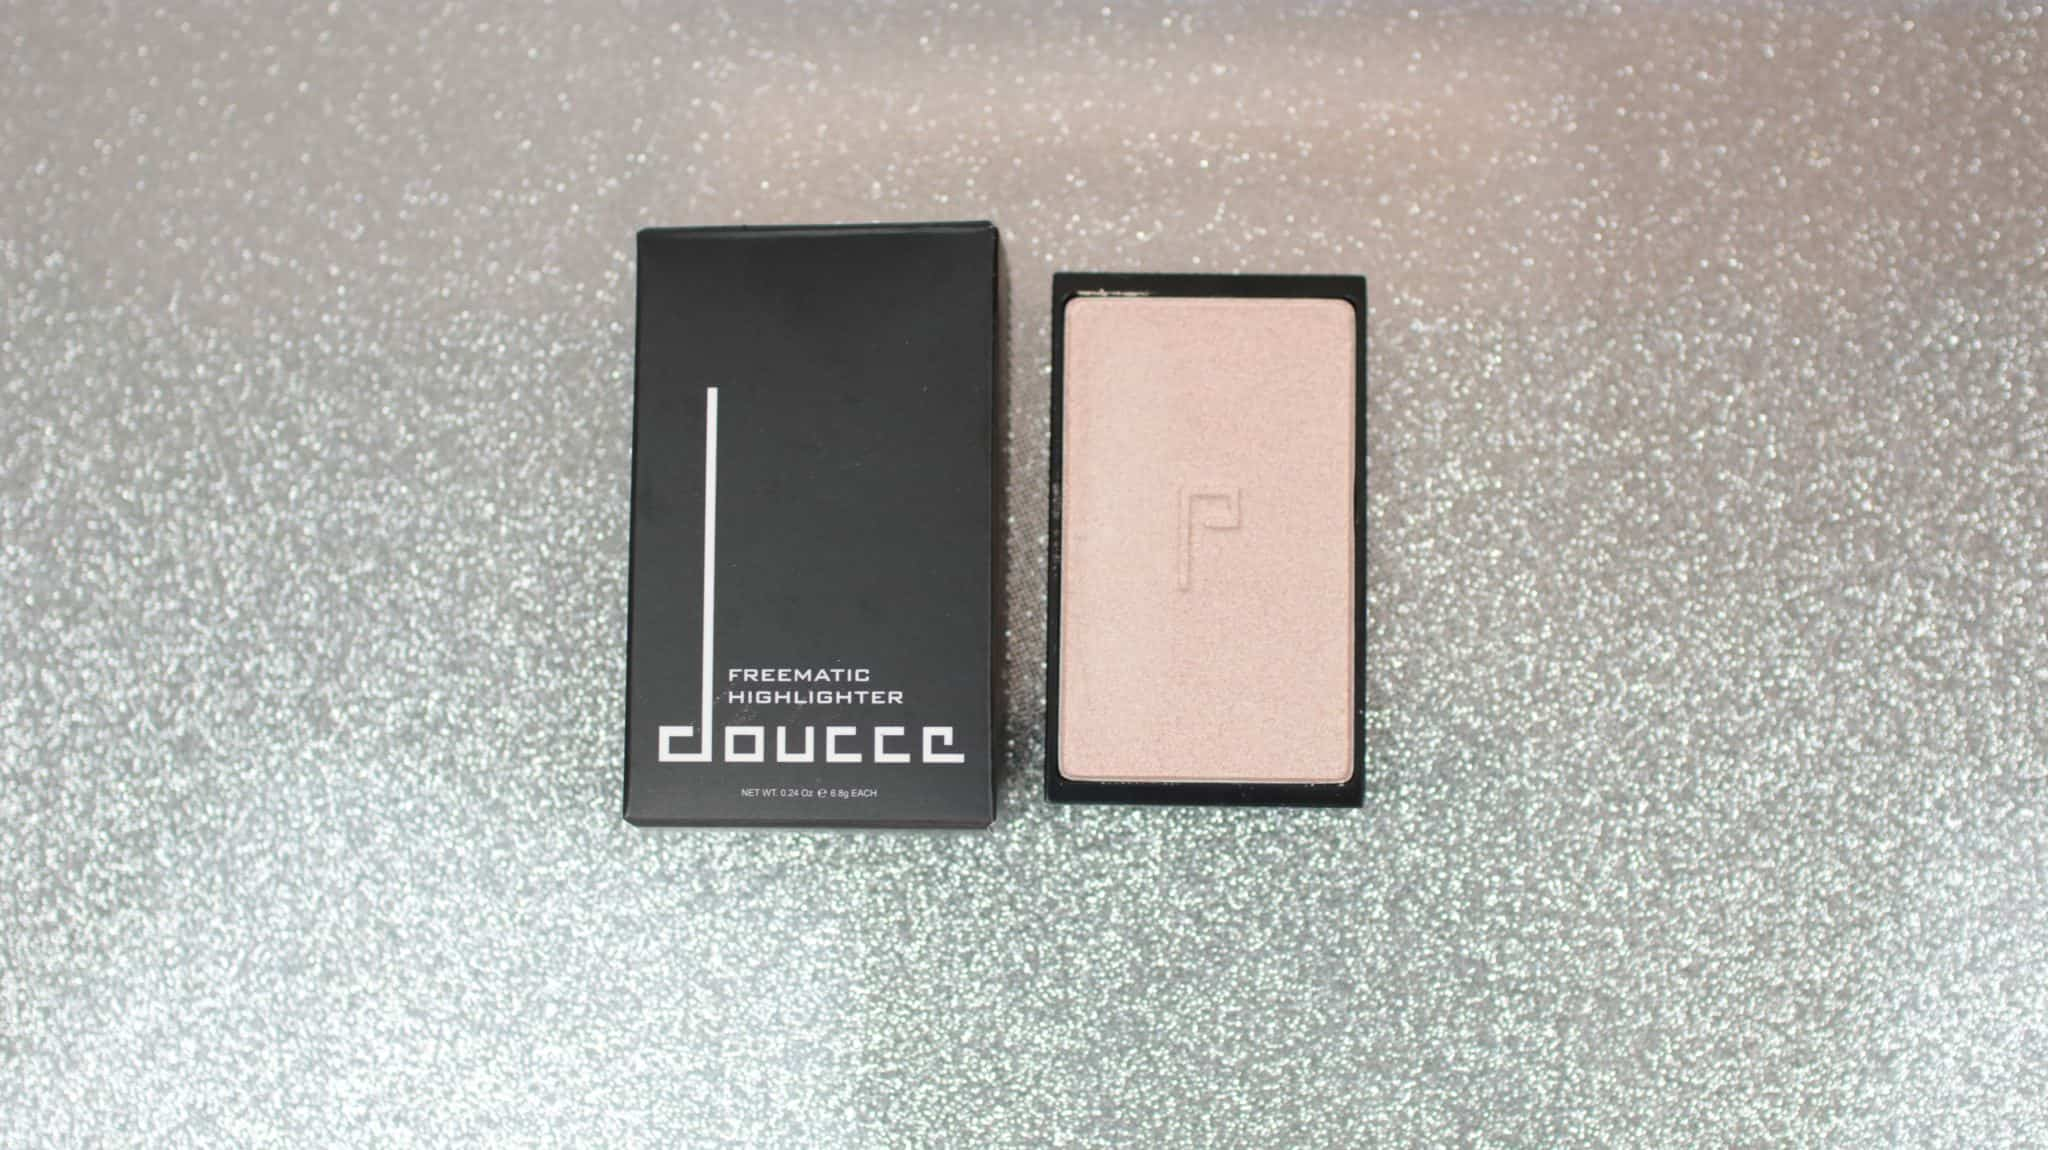 DOUCCE - Freematic Highlighter Mono - Sparked Ray